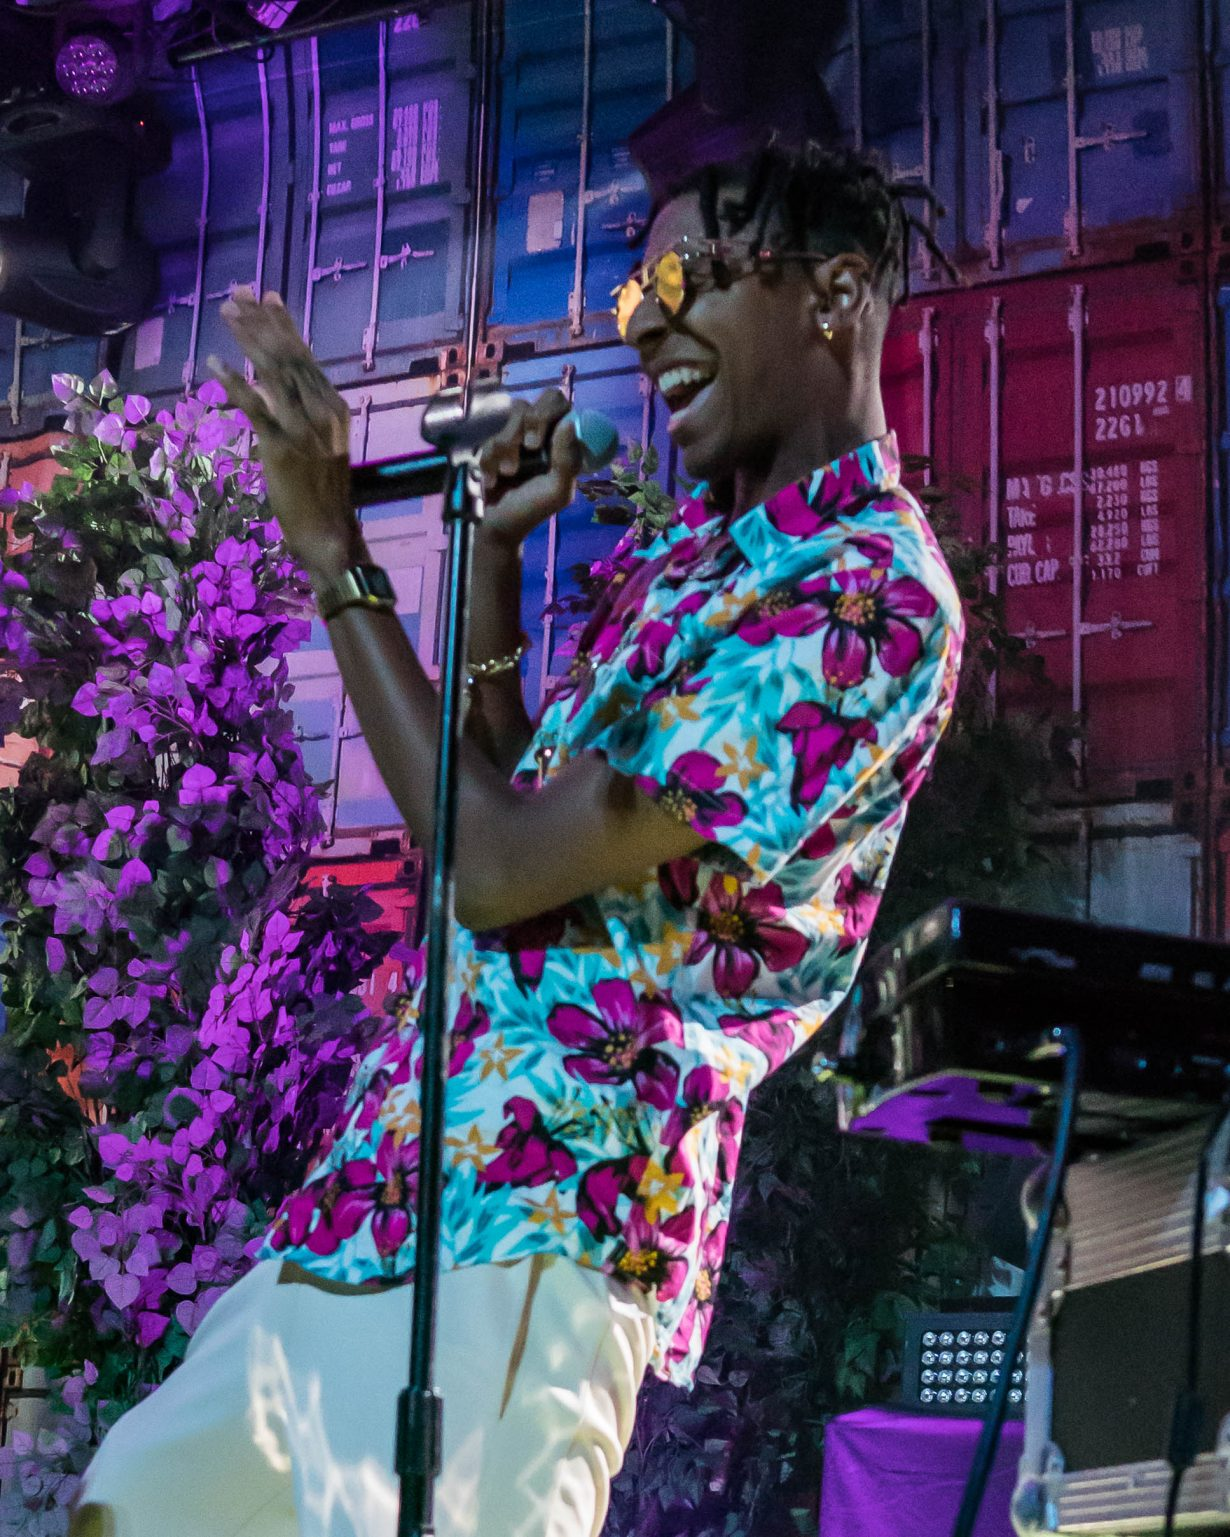 Masego. Metro Chicago. 2017 Chicago Il. Photo by Kevin Baker 1230x1537 Photos: Chicago Music Photo Gallery of 2017 Take a Look Through Our Lens